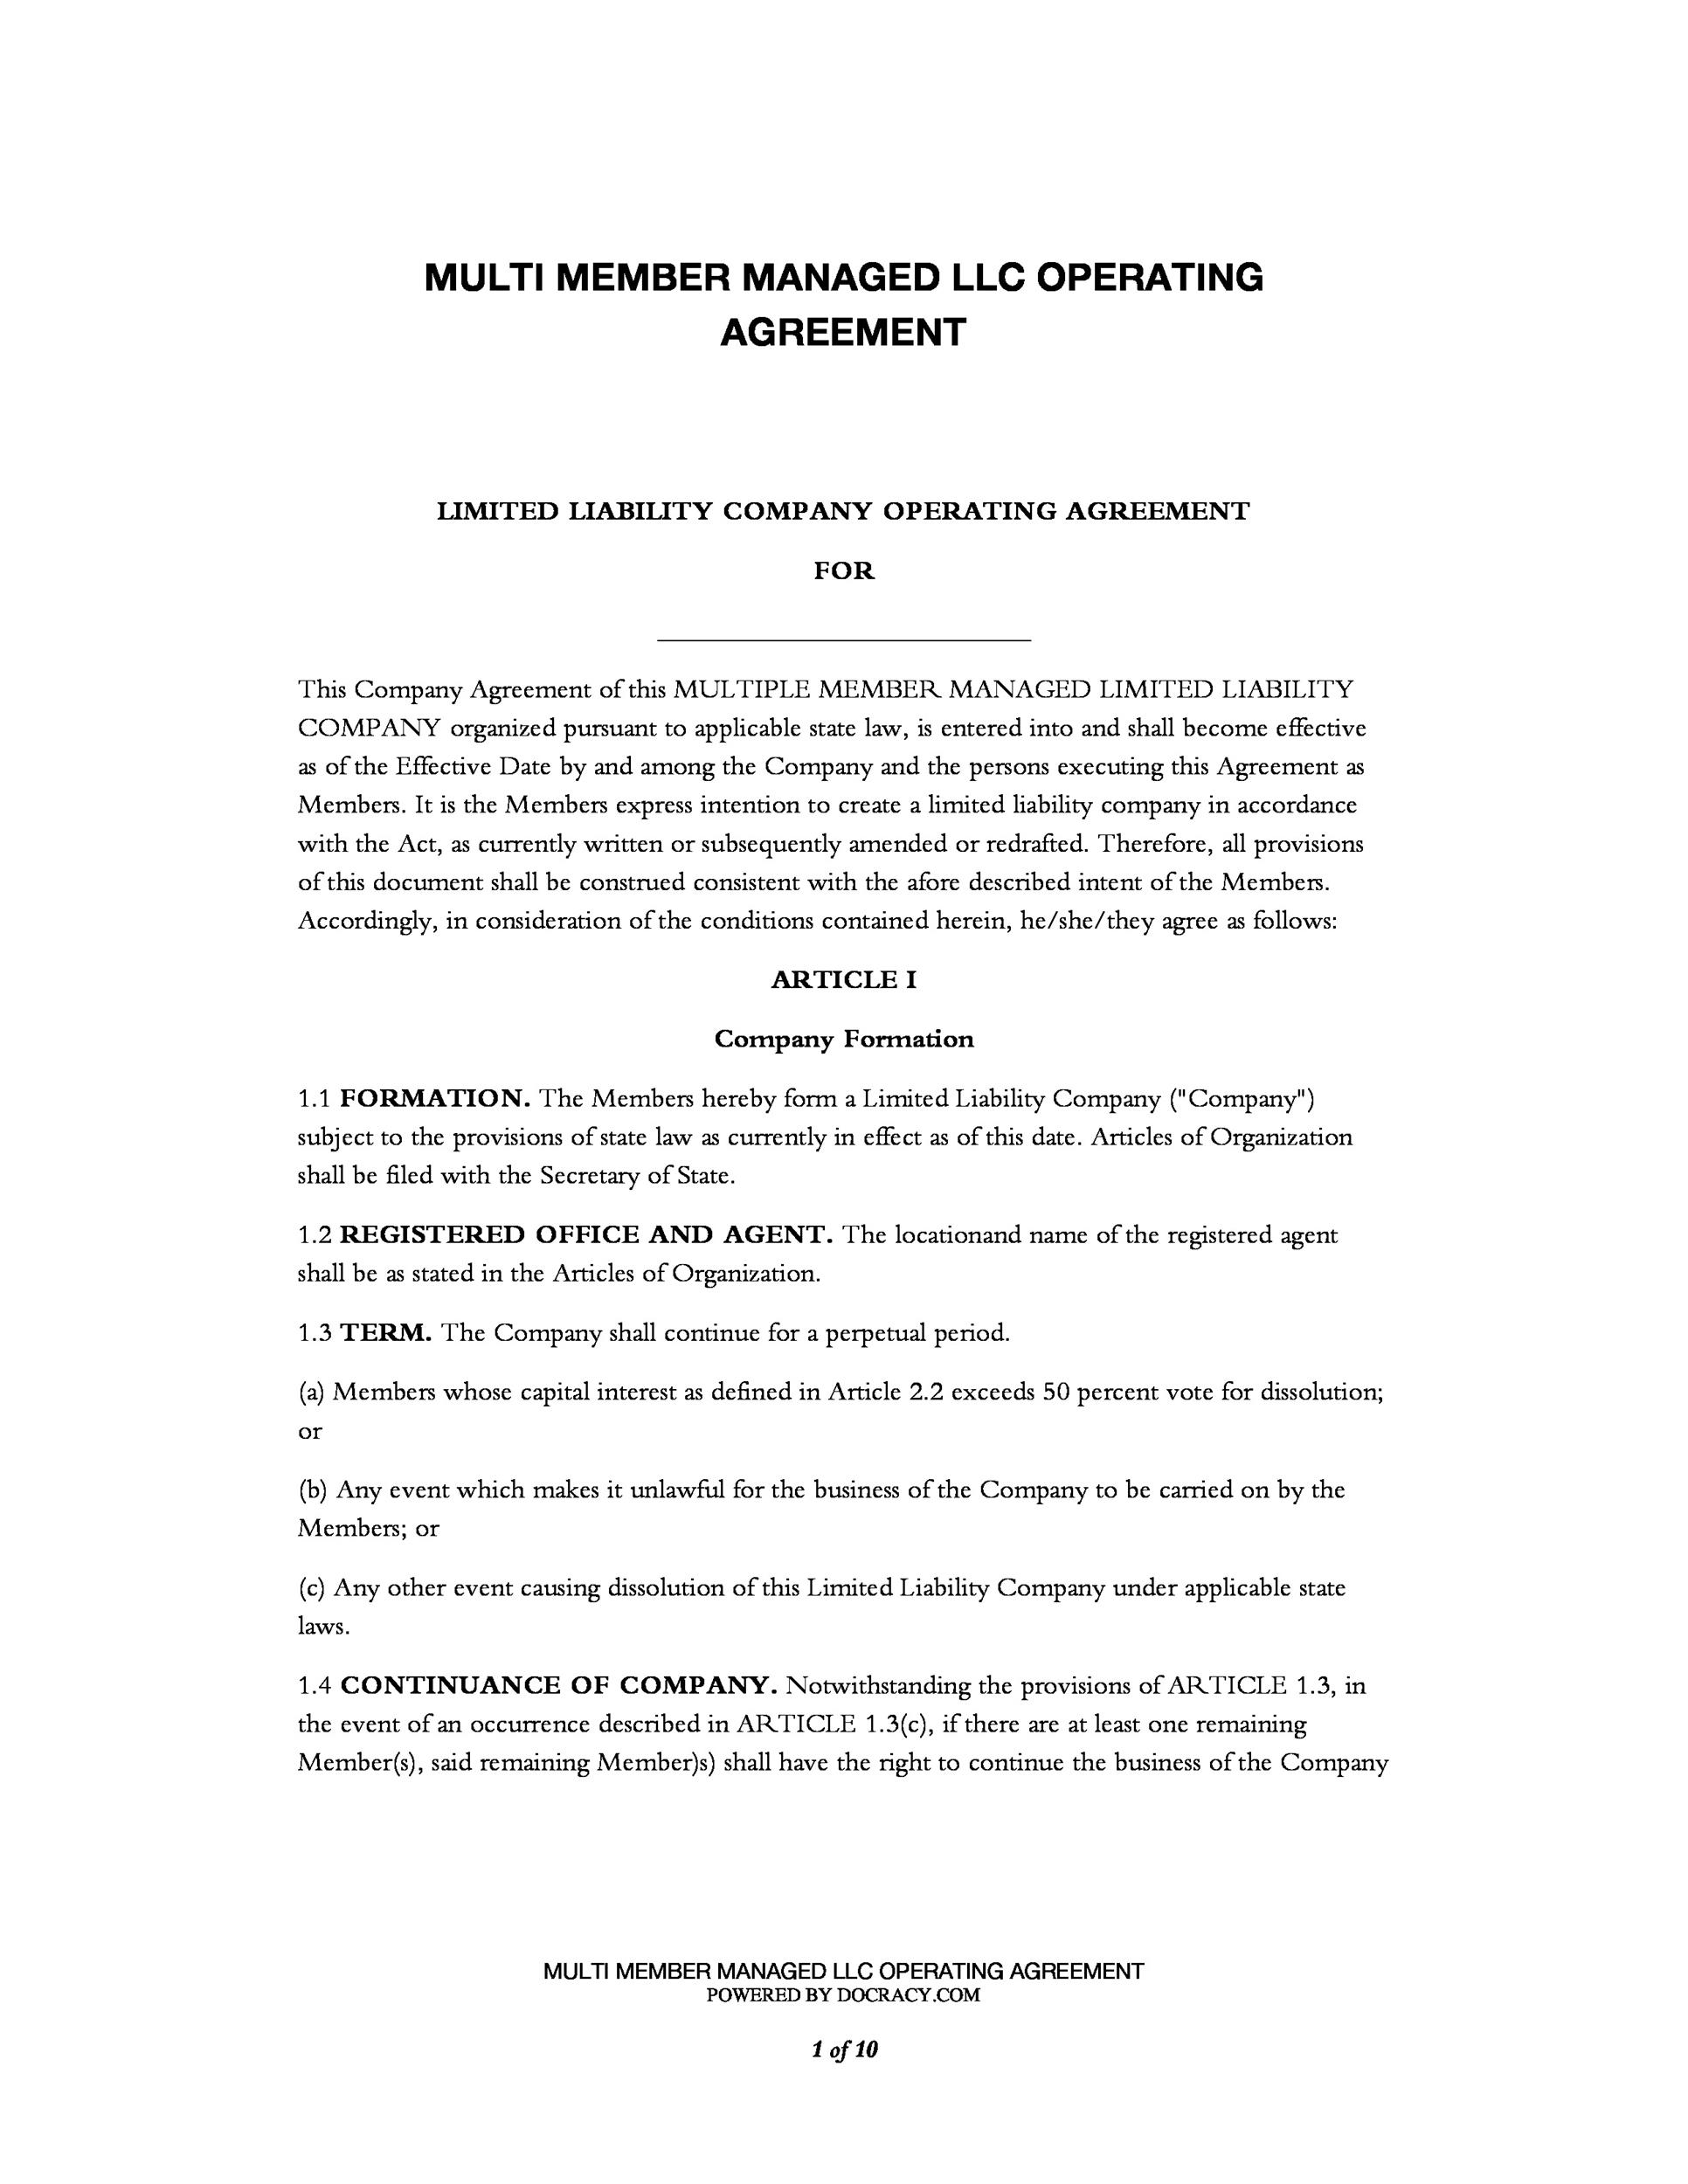 Free llc operating agreement template 04